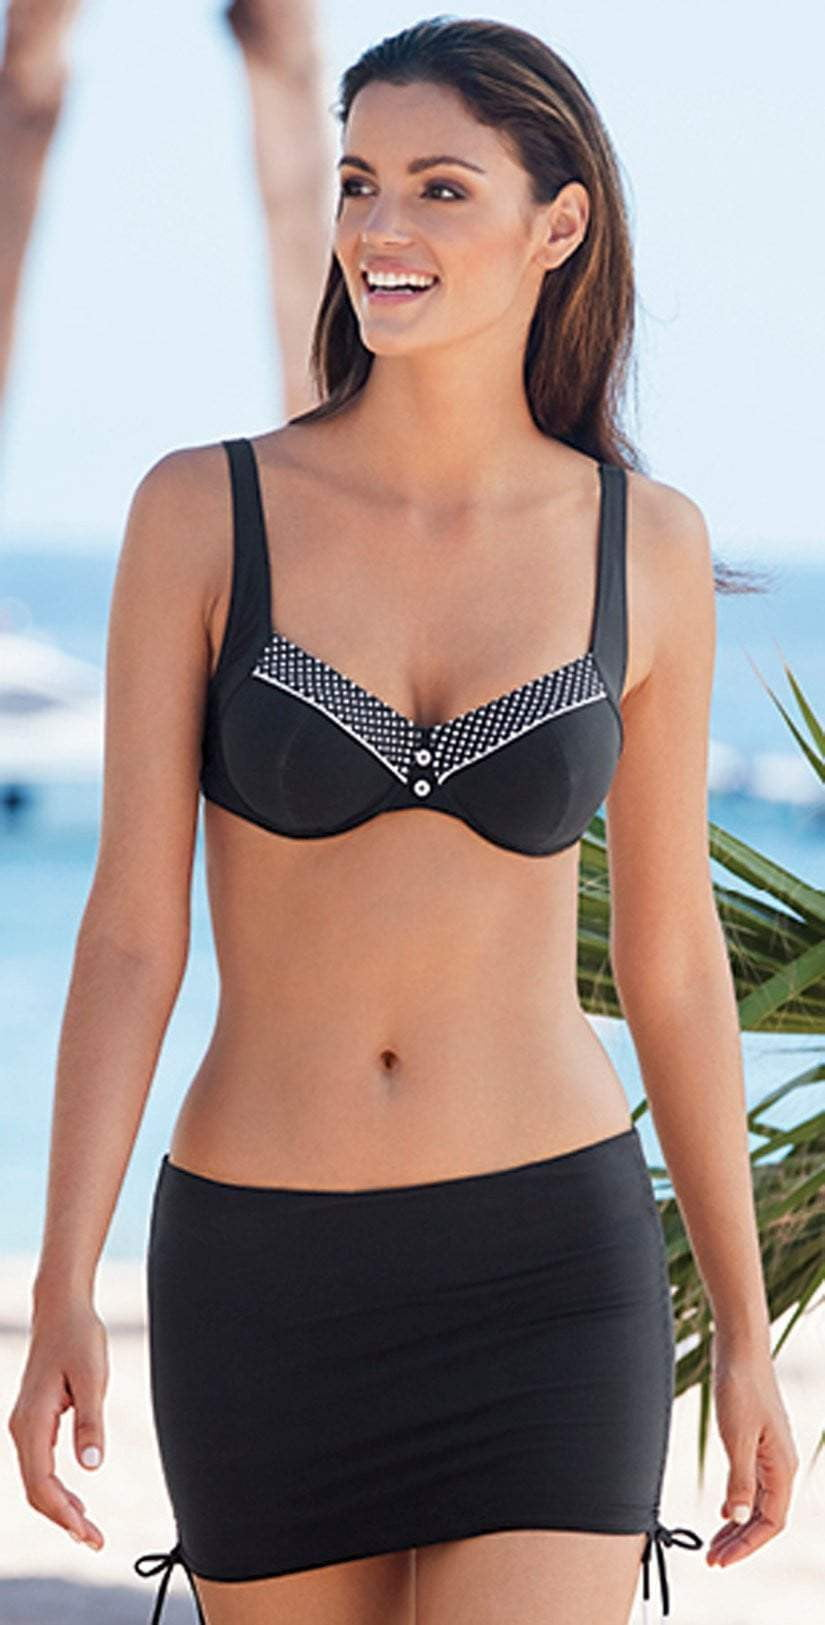 Lidea Capri Black and White Bikini Top 7576-583-077: